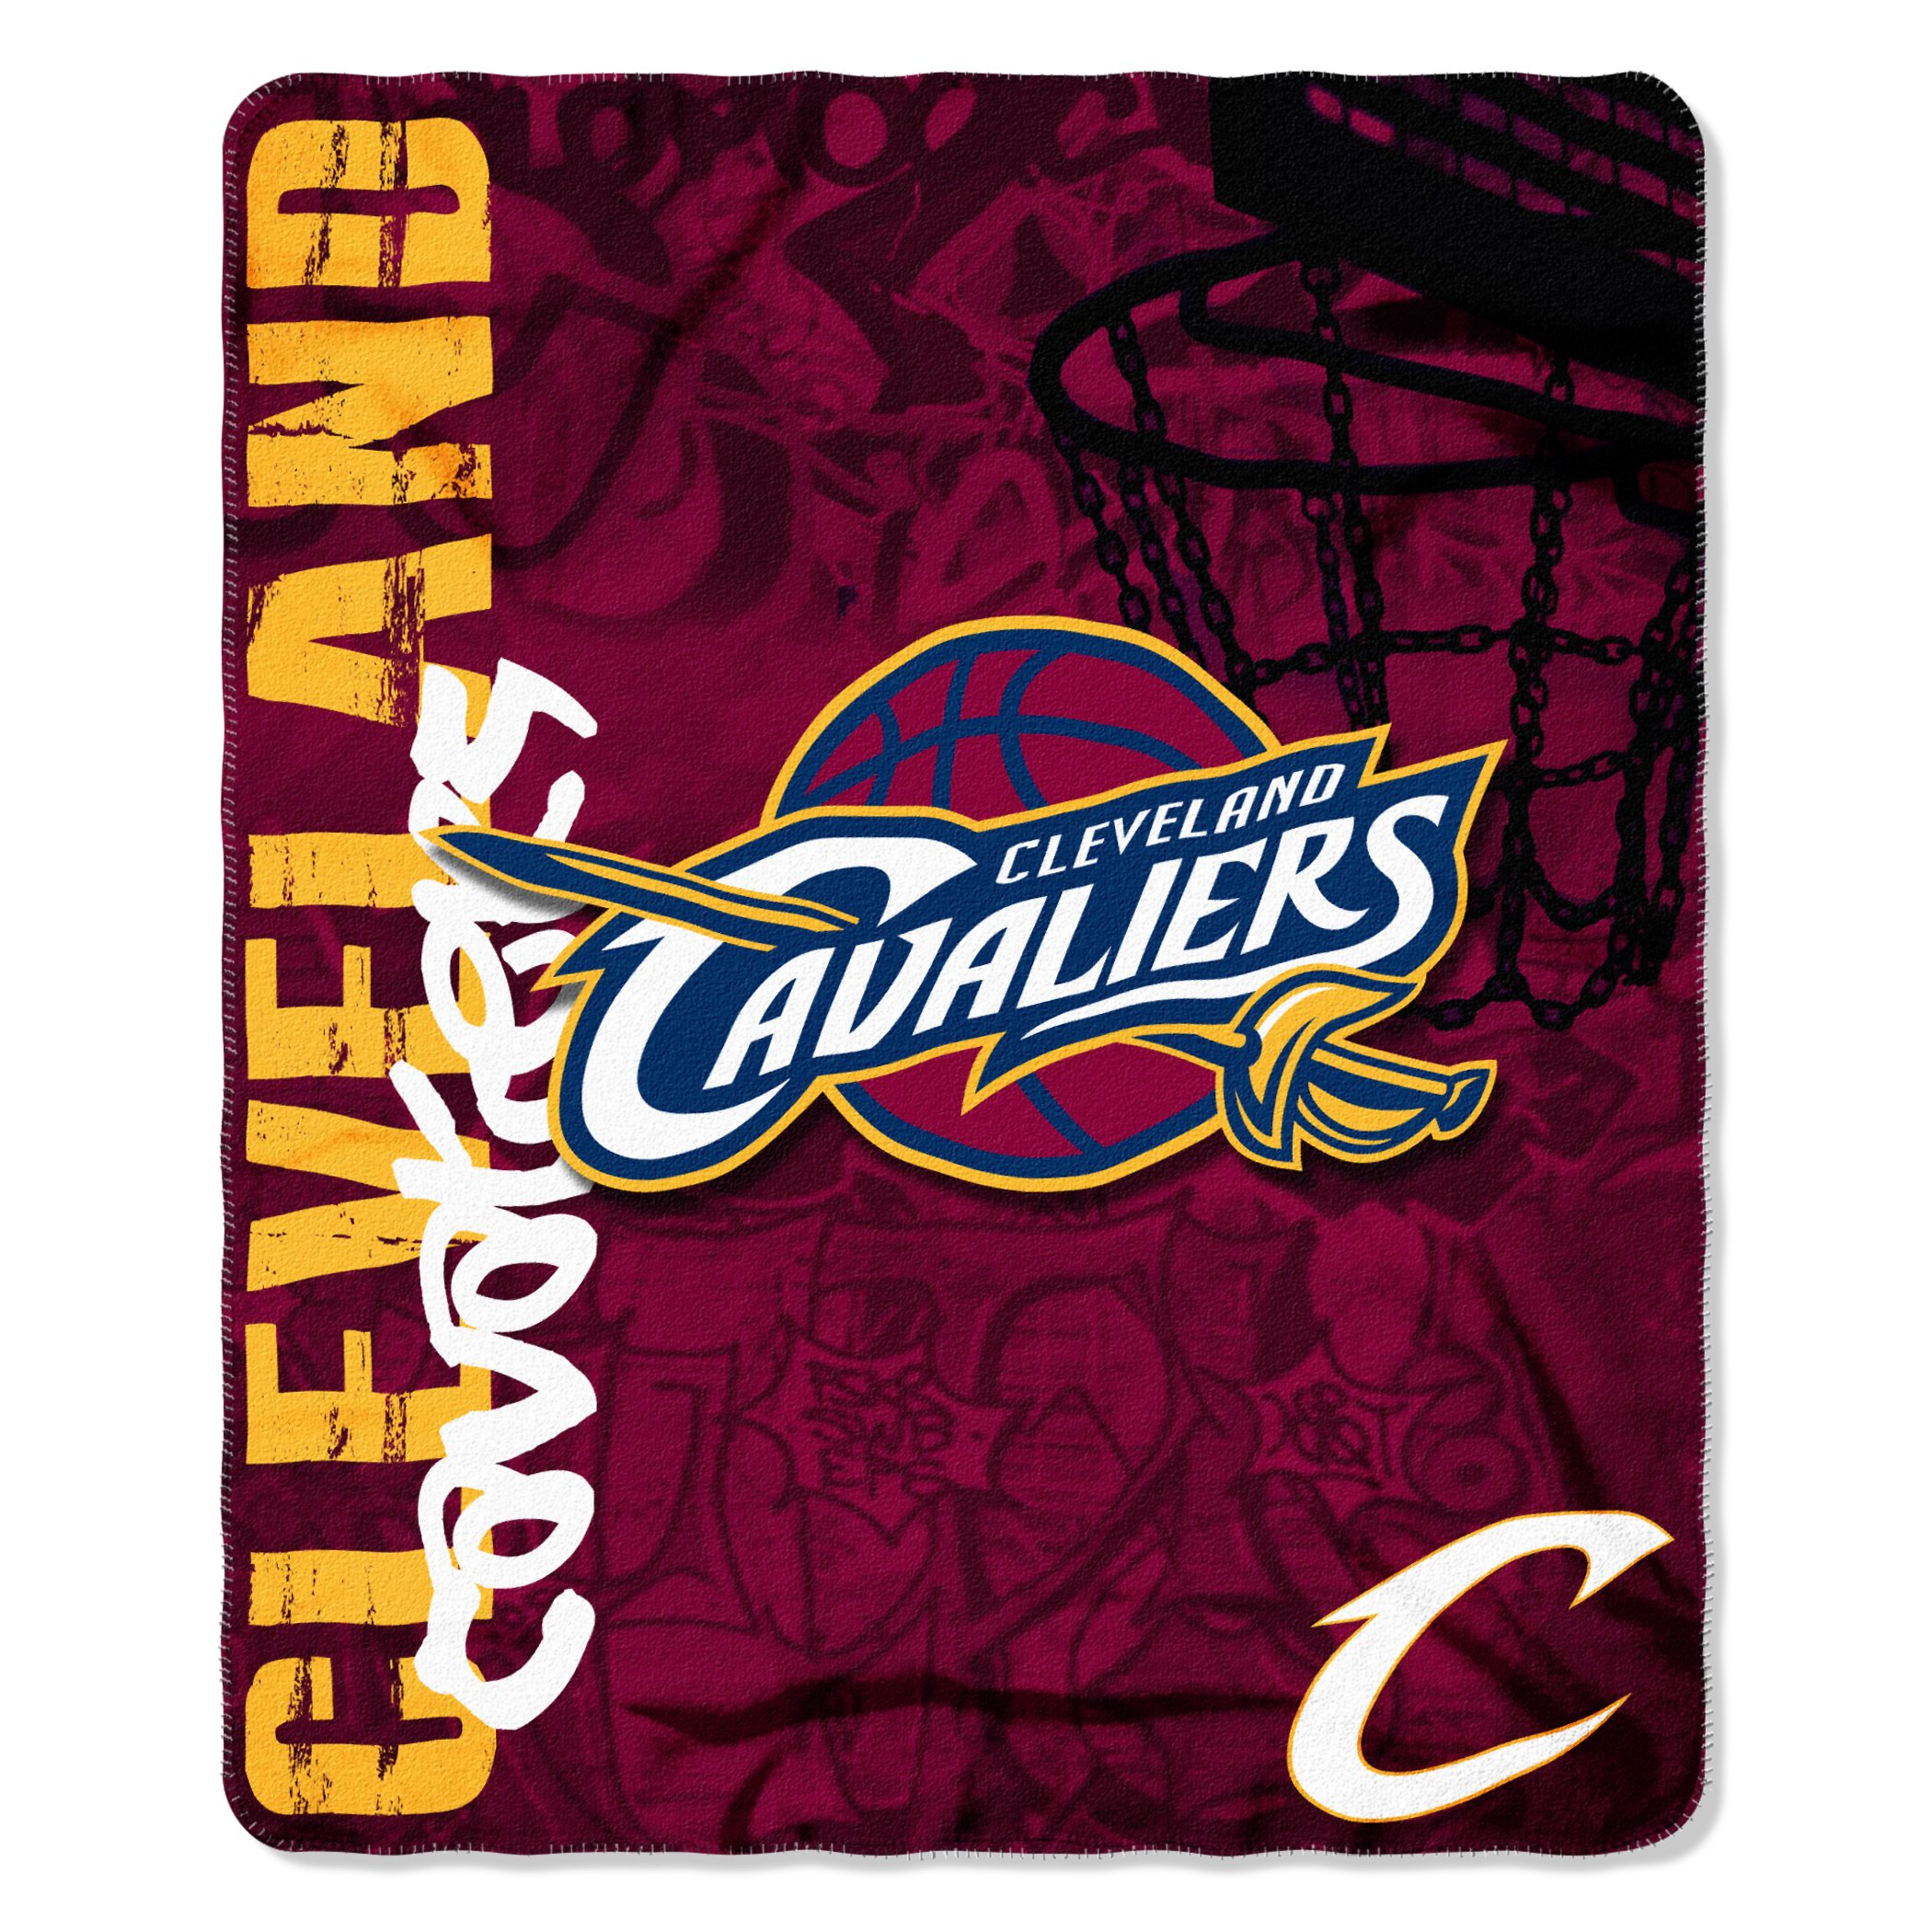 The Northwest Company NBA Cleveland Cavaliers Hard Knocks Printed Fleece Throw, 50-inch by 60-inch